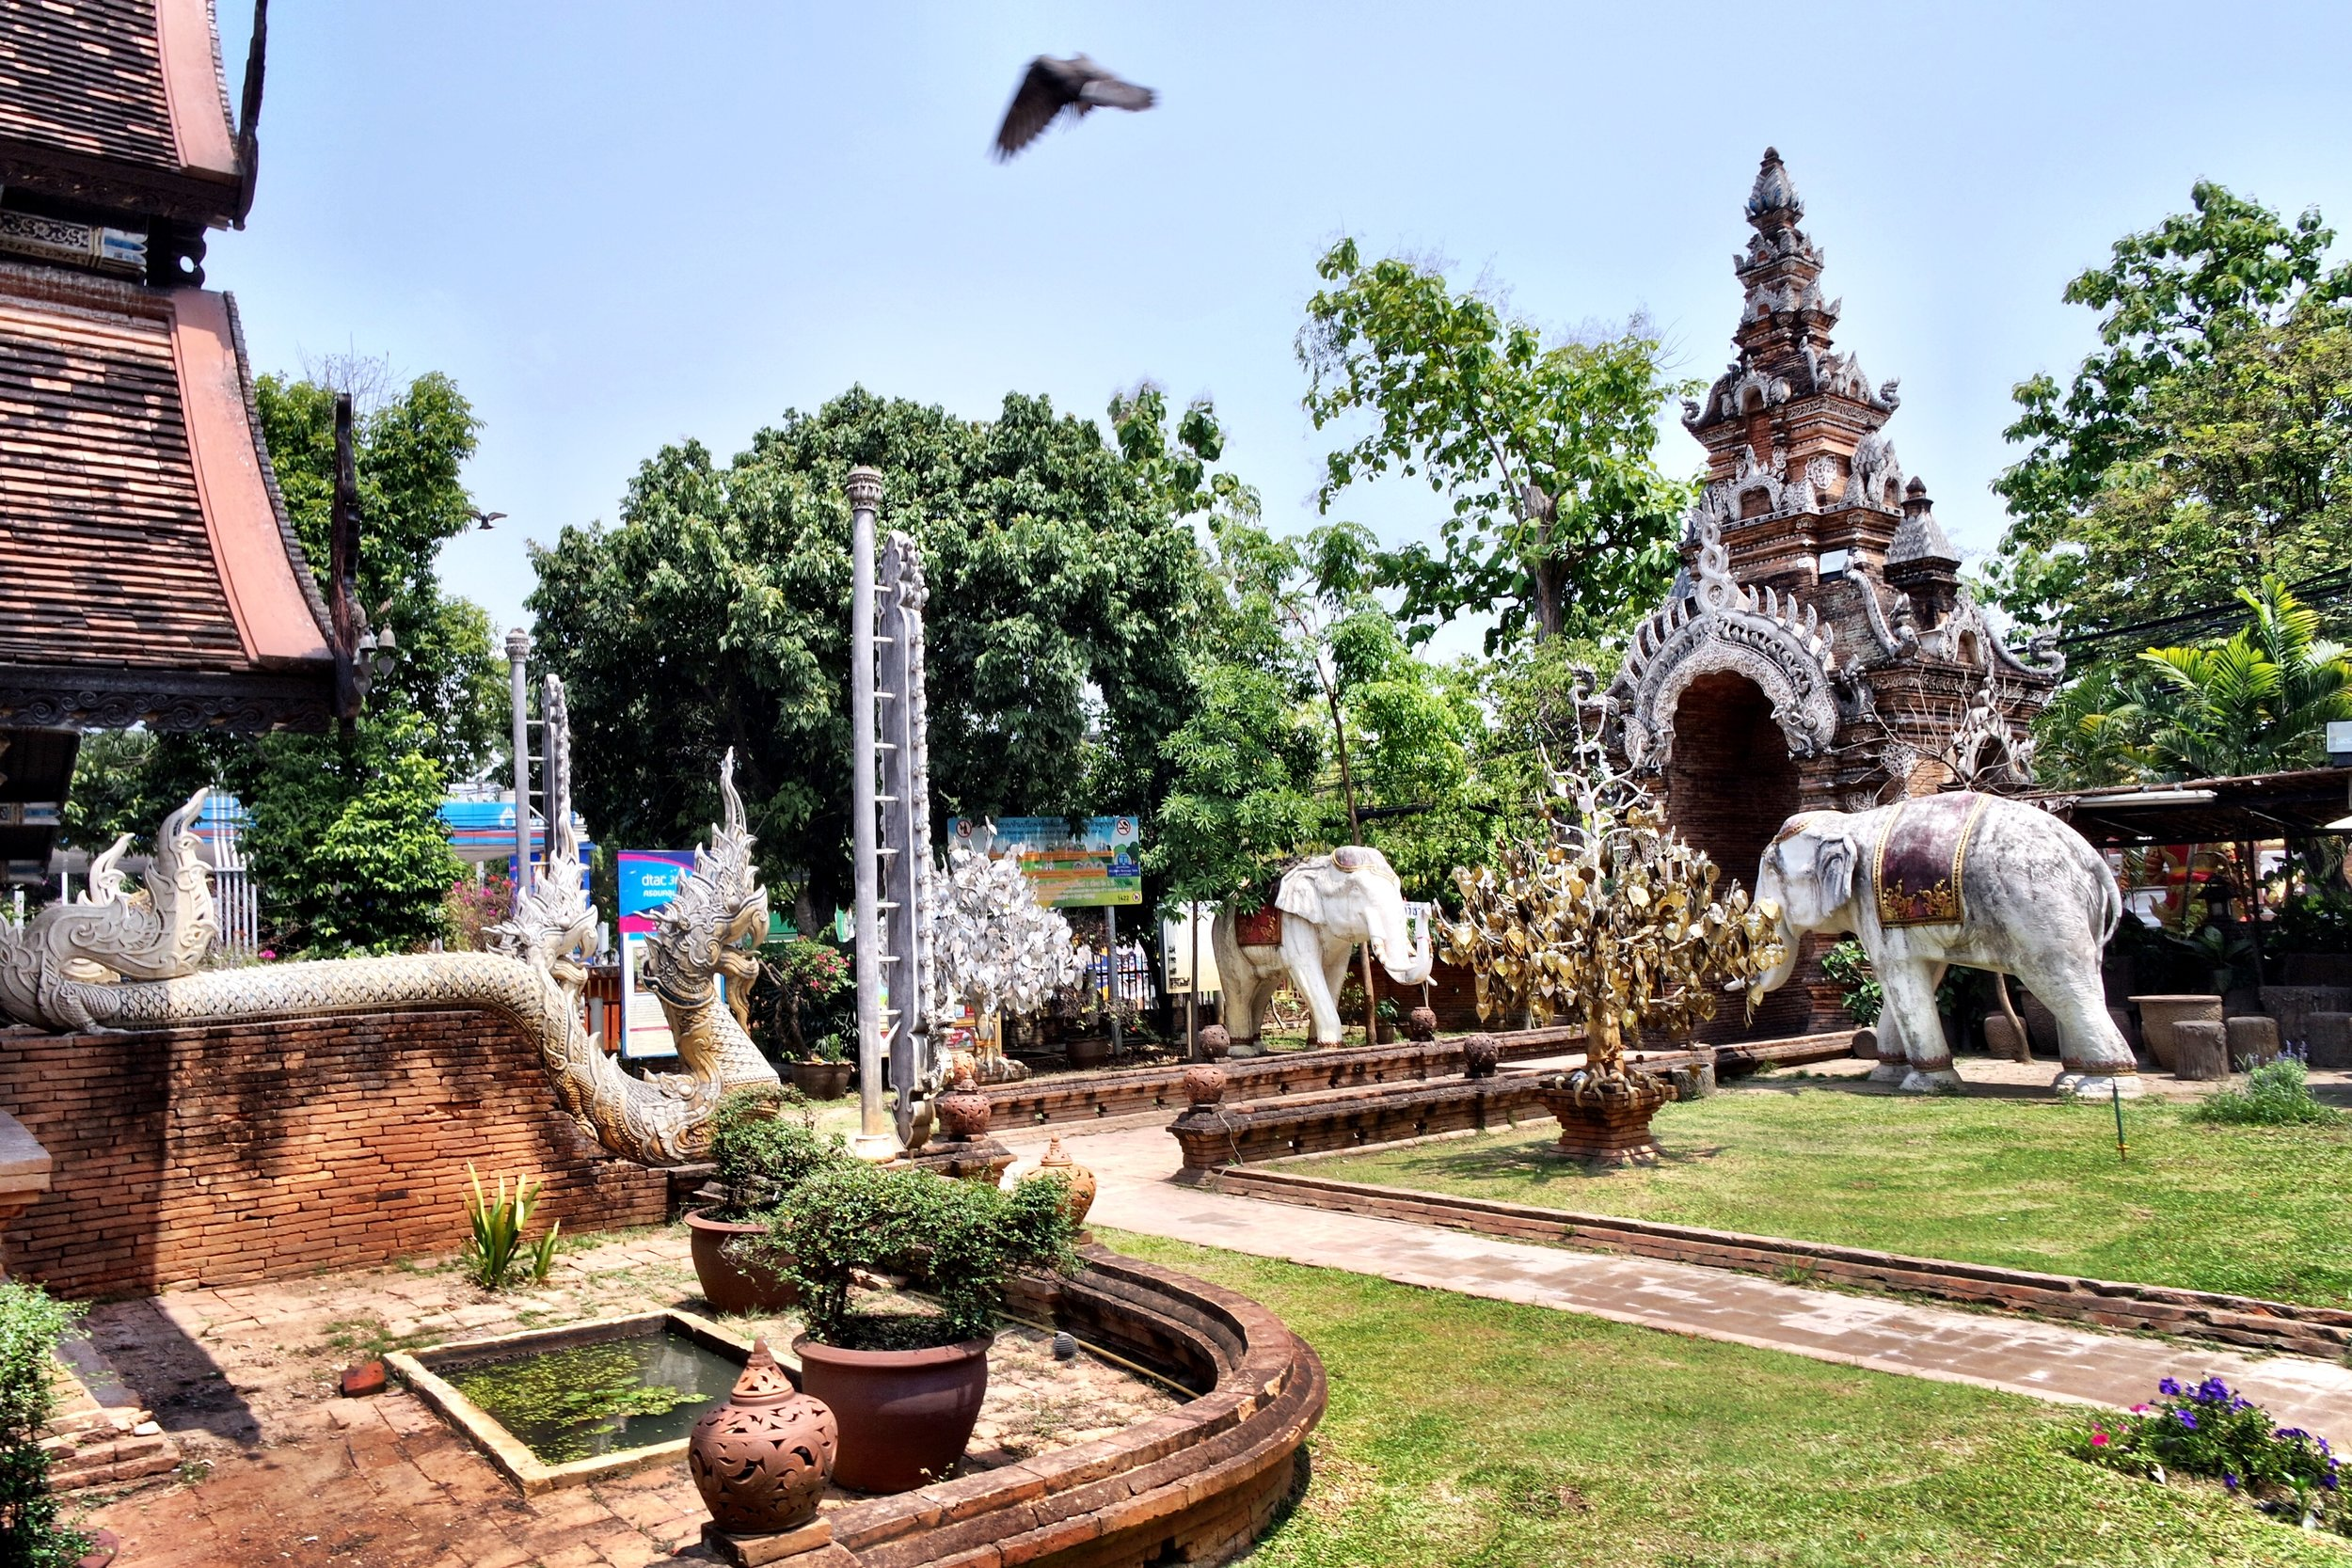 It never makes the list of must-see temples in Chiang Mai, but we both fell under the spell of Wat Lok Molee